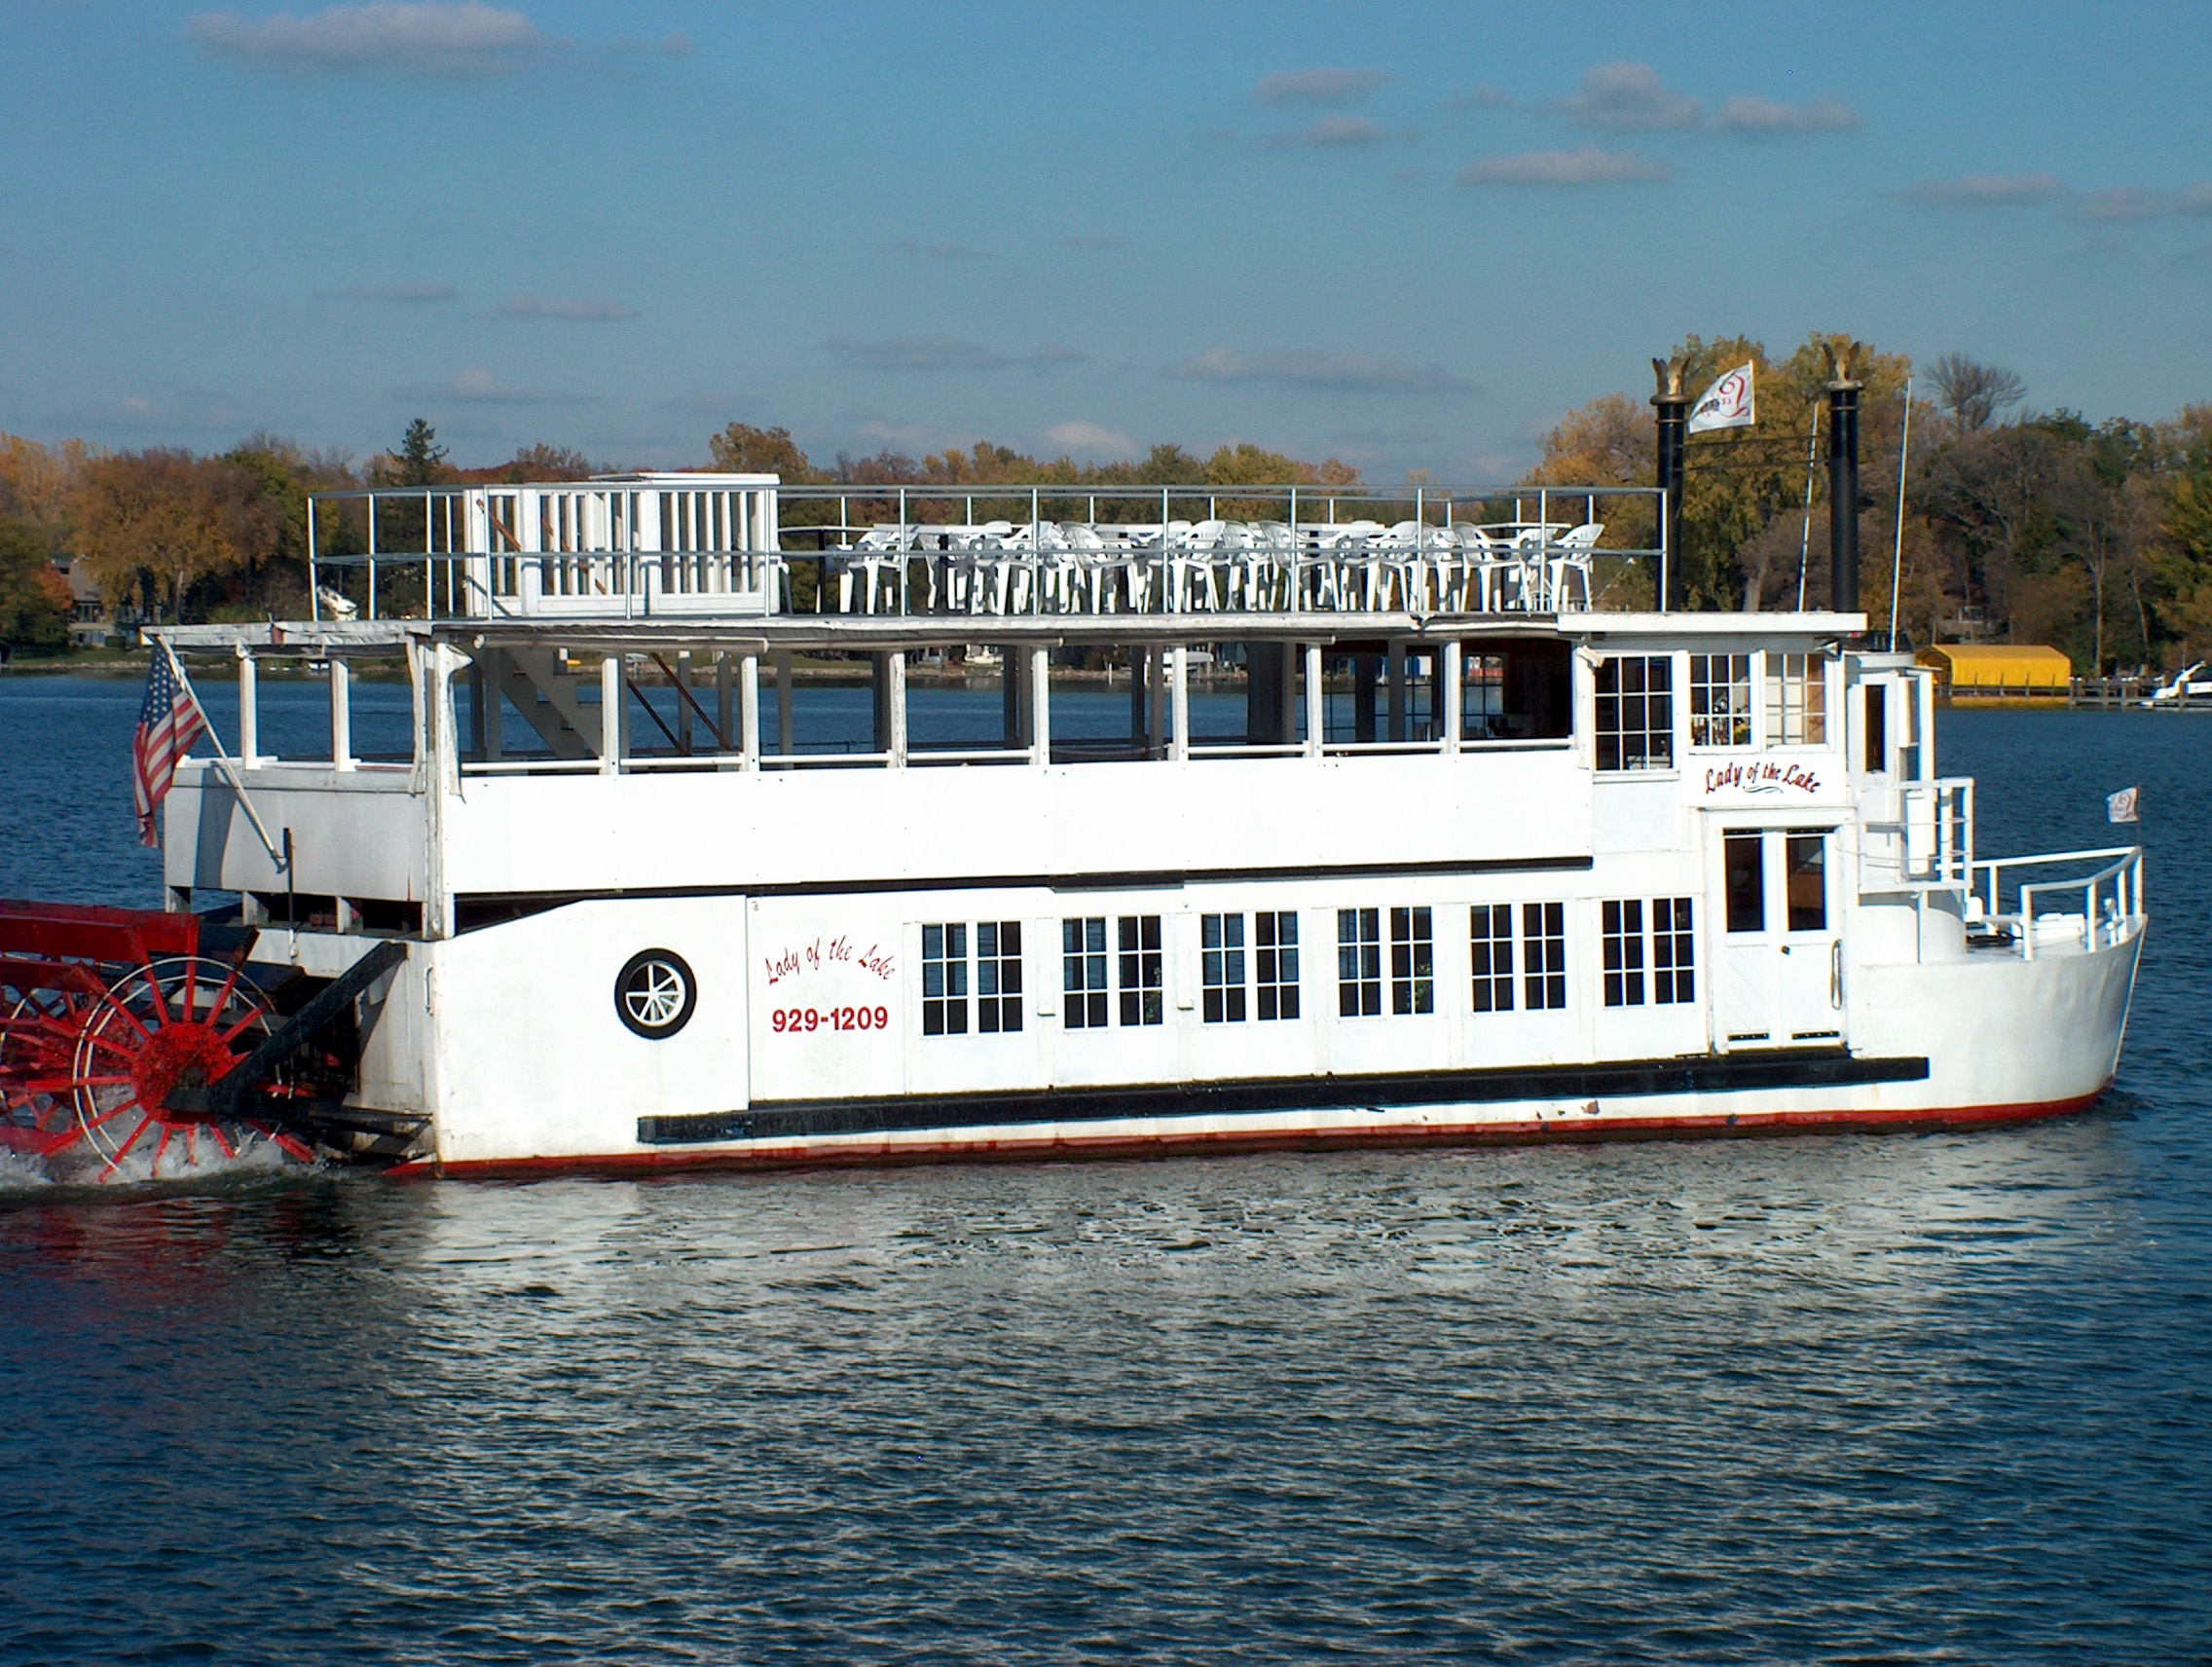 The Lady of the Lake leaves her port of Excelsior Minnesota